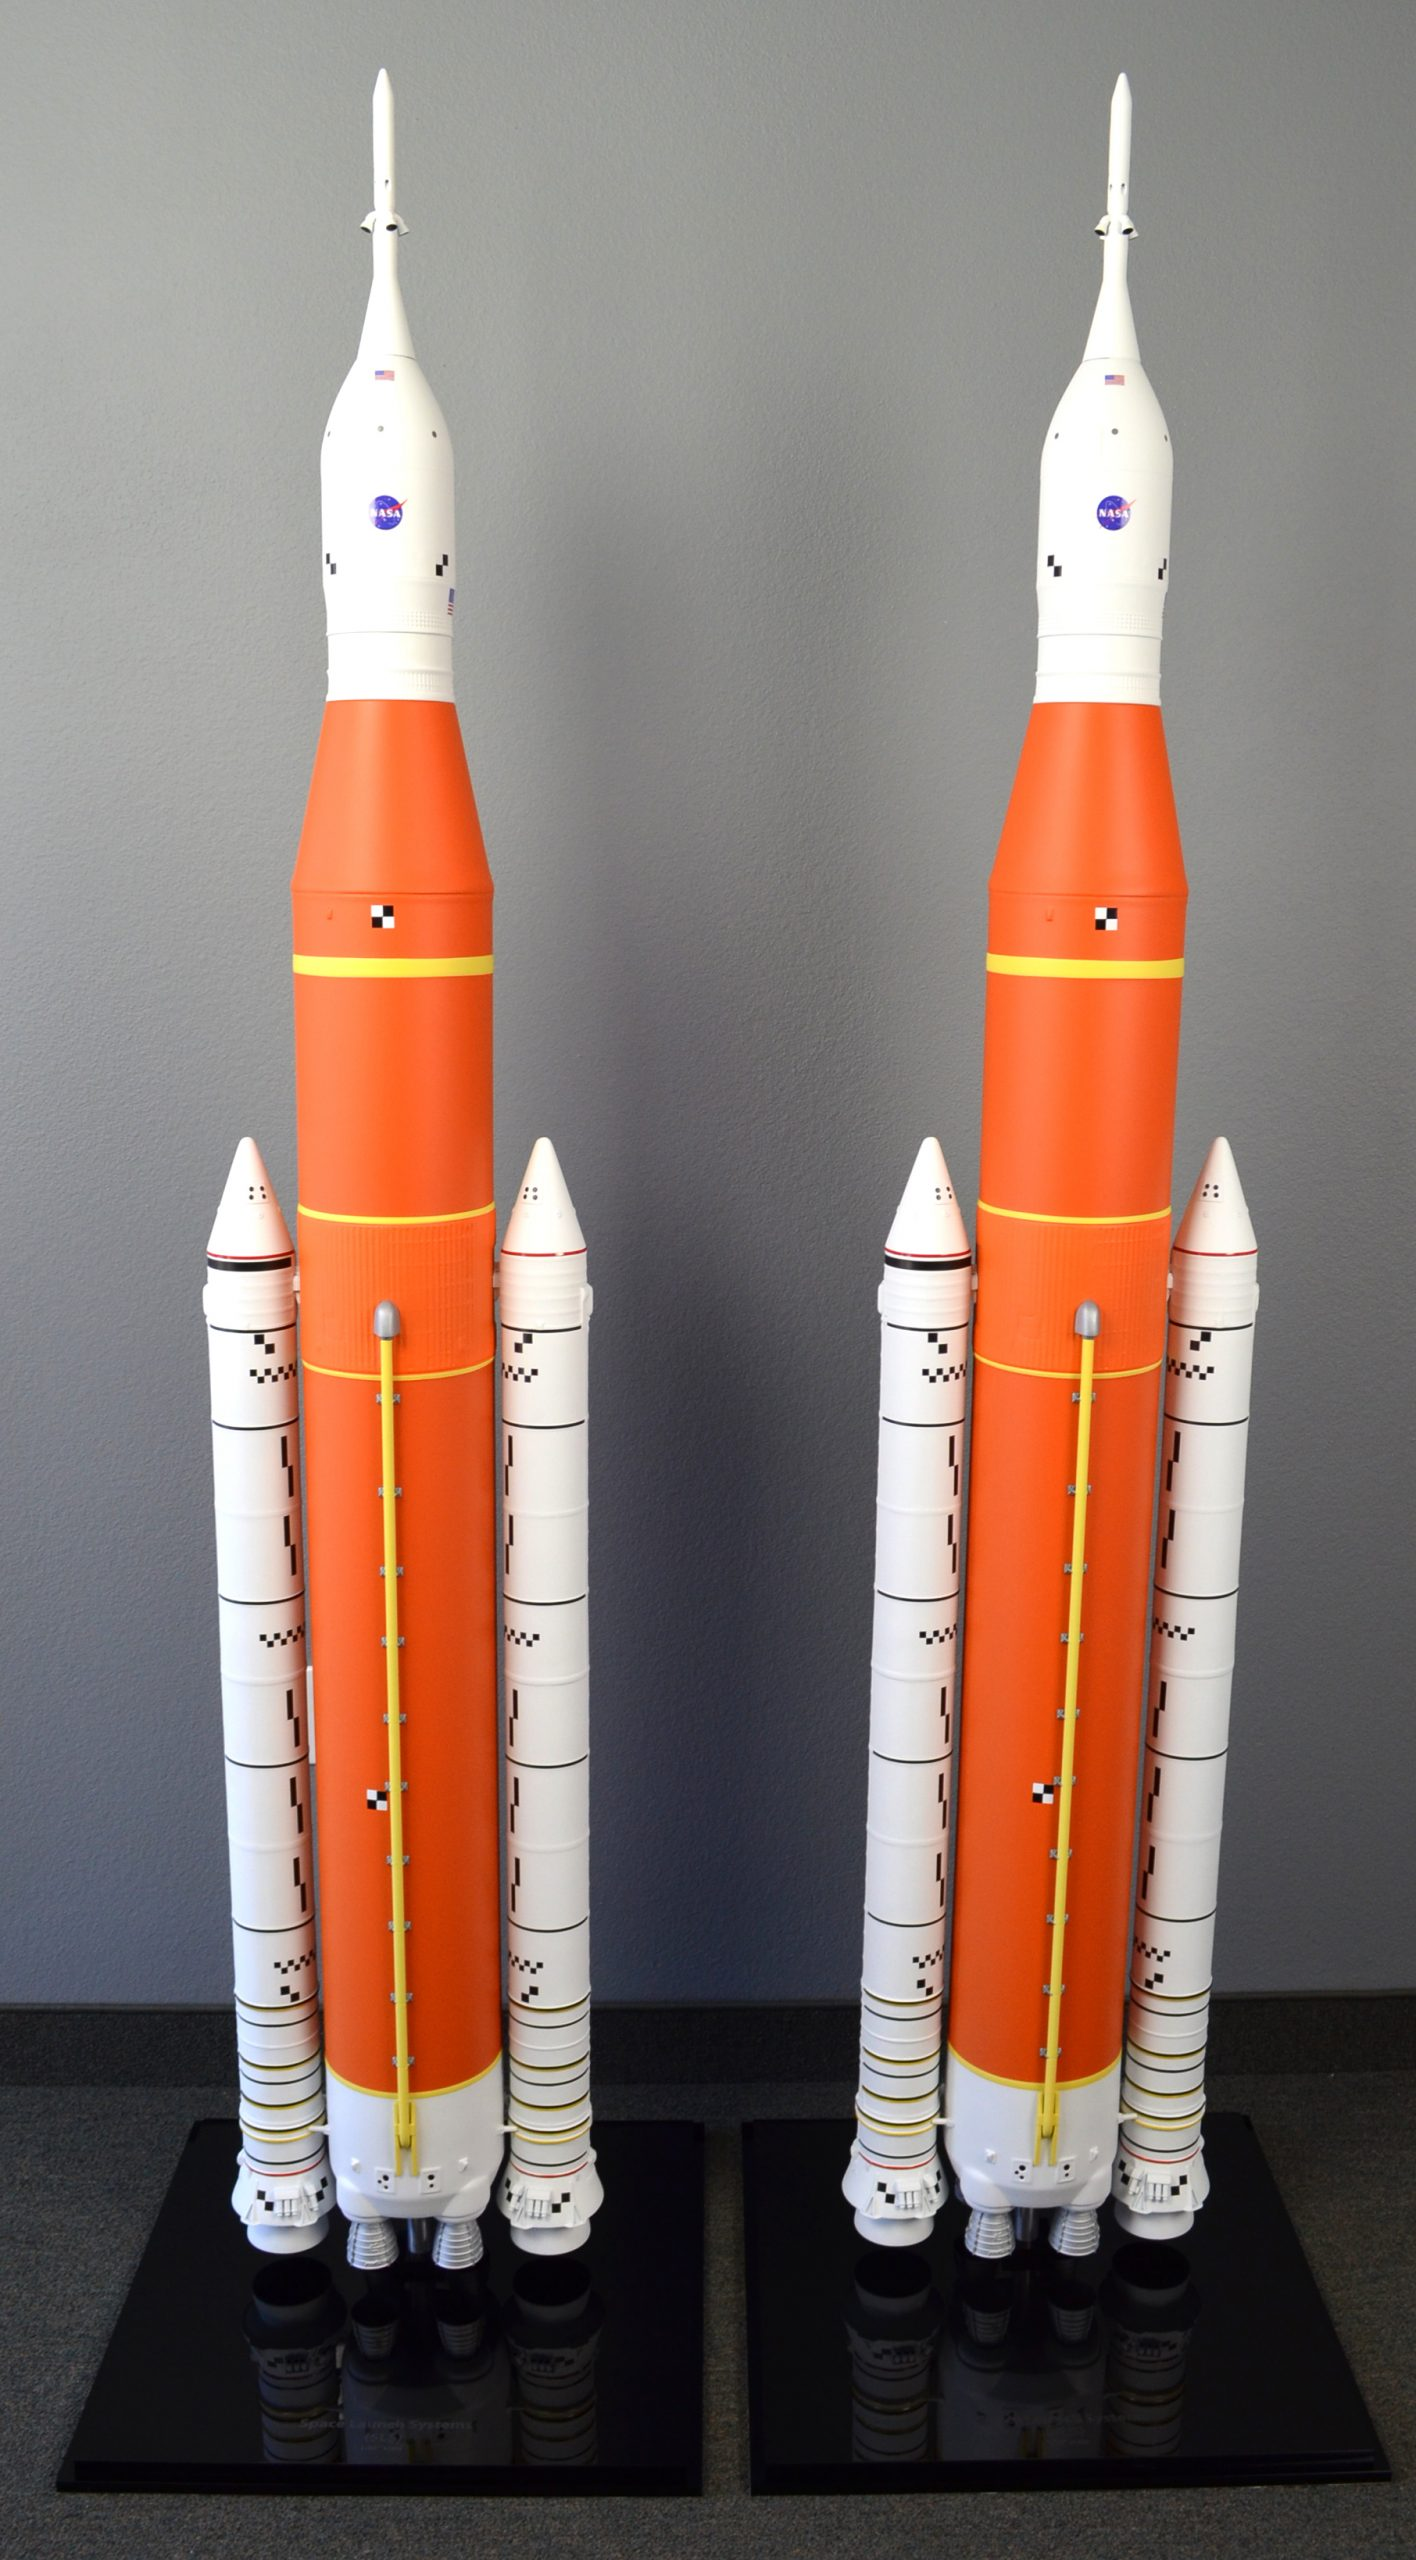 NASA SLS Block 1 Artemis Rocket Model